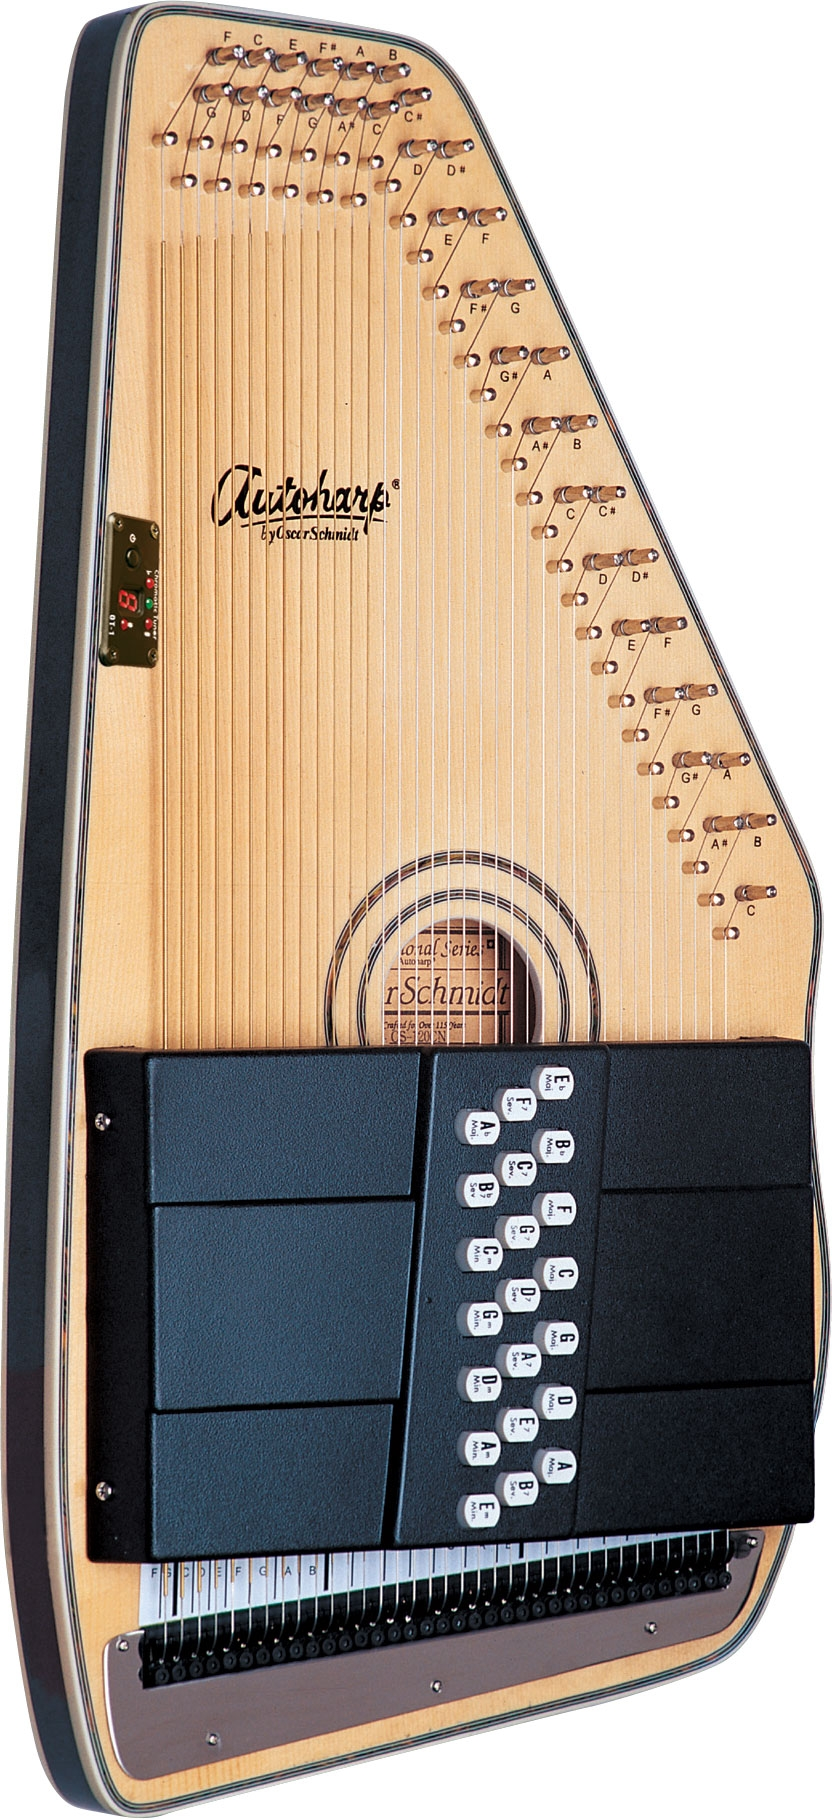 picture about Free Printable Lap Harp Music Cards called Autoharp - Wikipedia